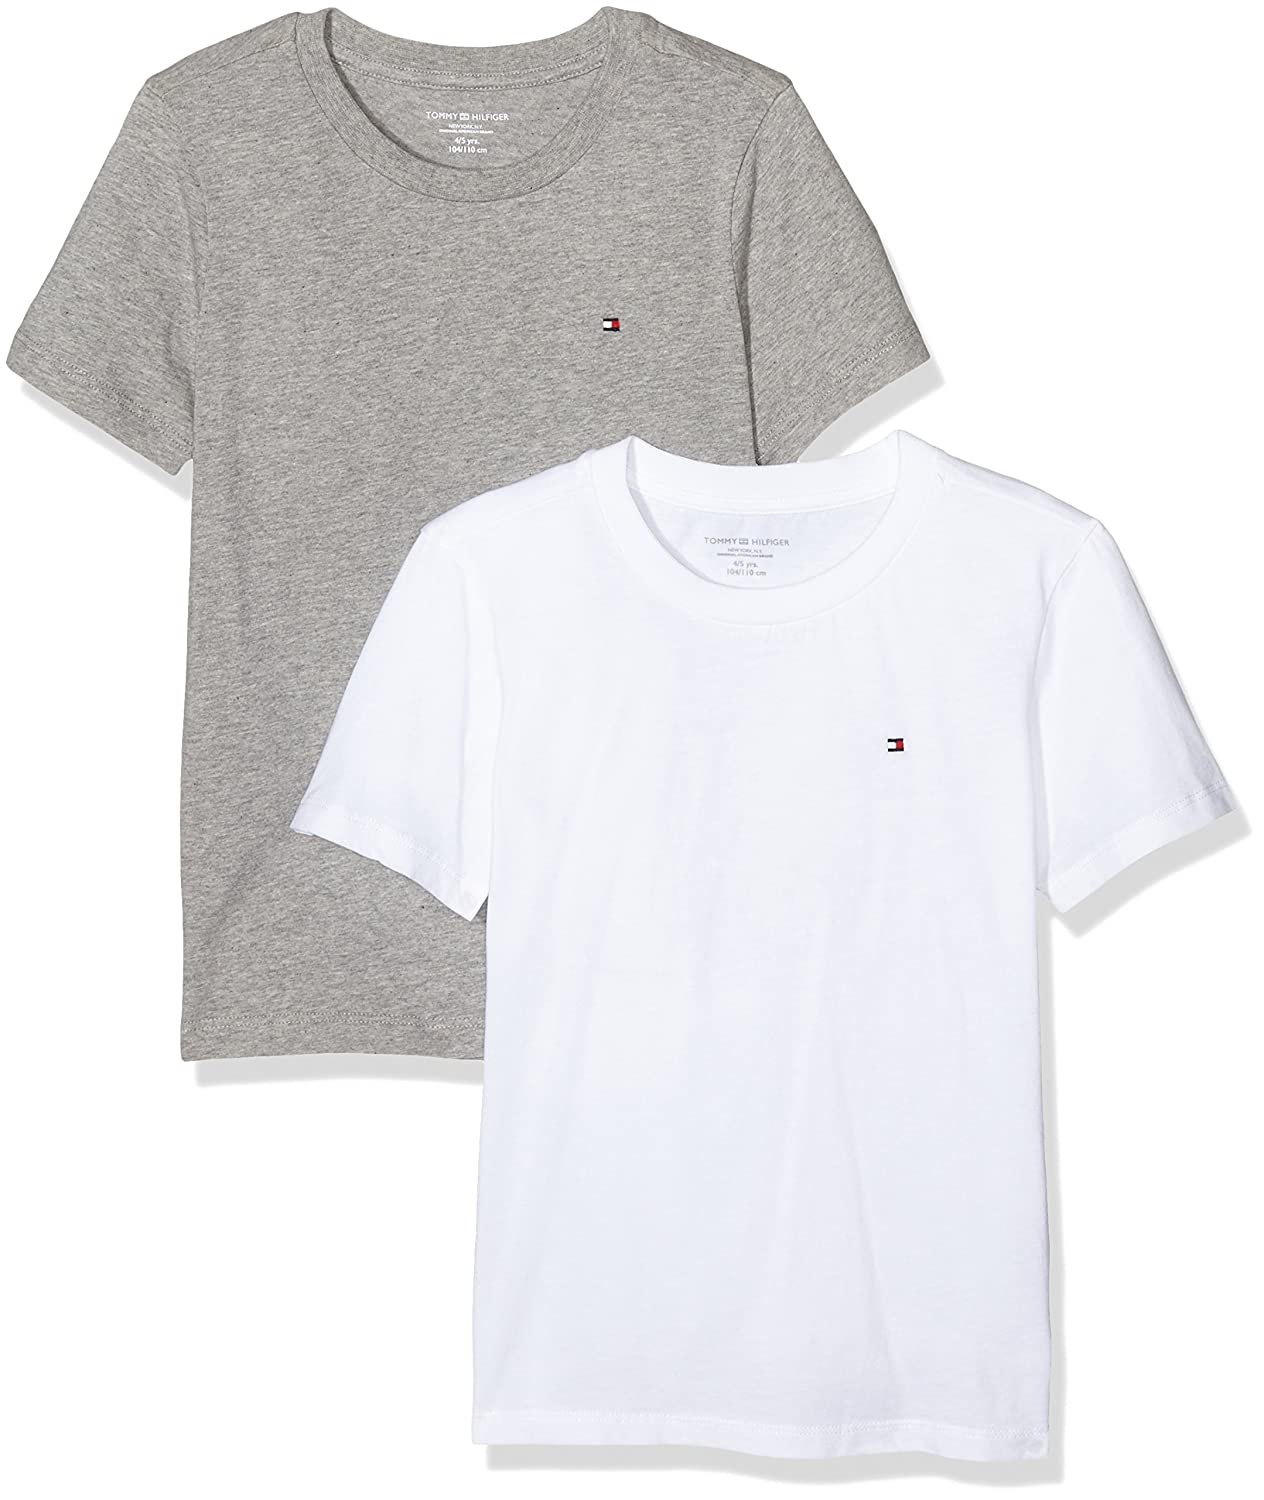 dee574dc Tommy Hilfiger Boy's T-Shirt (Pack of 2: Amazon.co.uk: Clothing